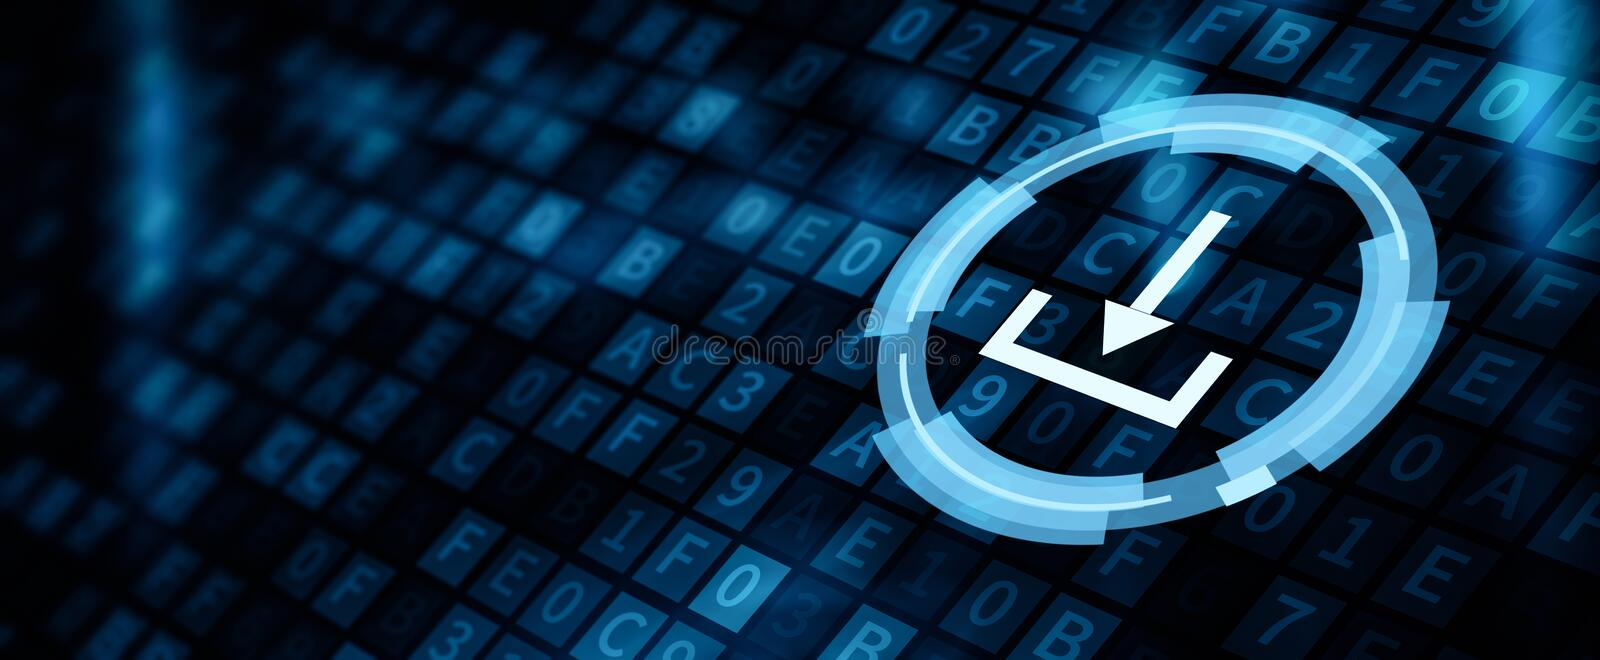 Download Data Storage Business Technology Network Concept.  royalty free stock photo